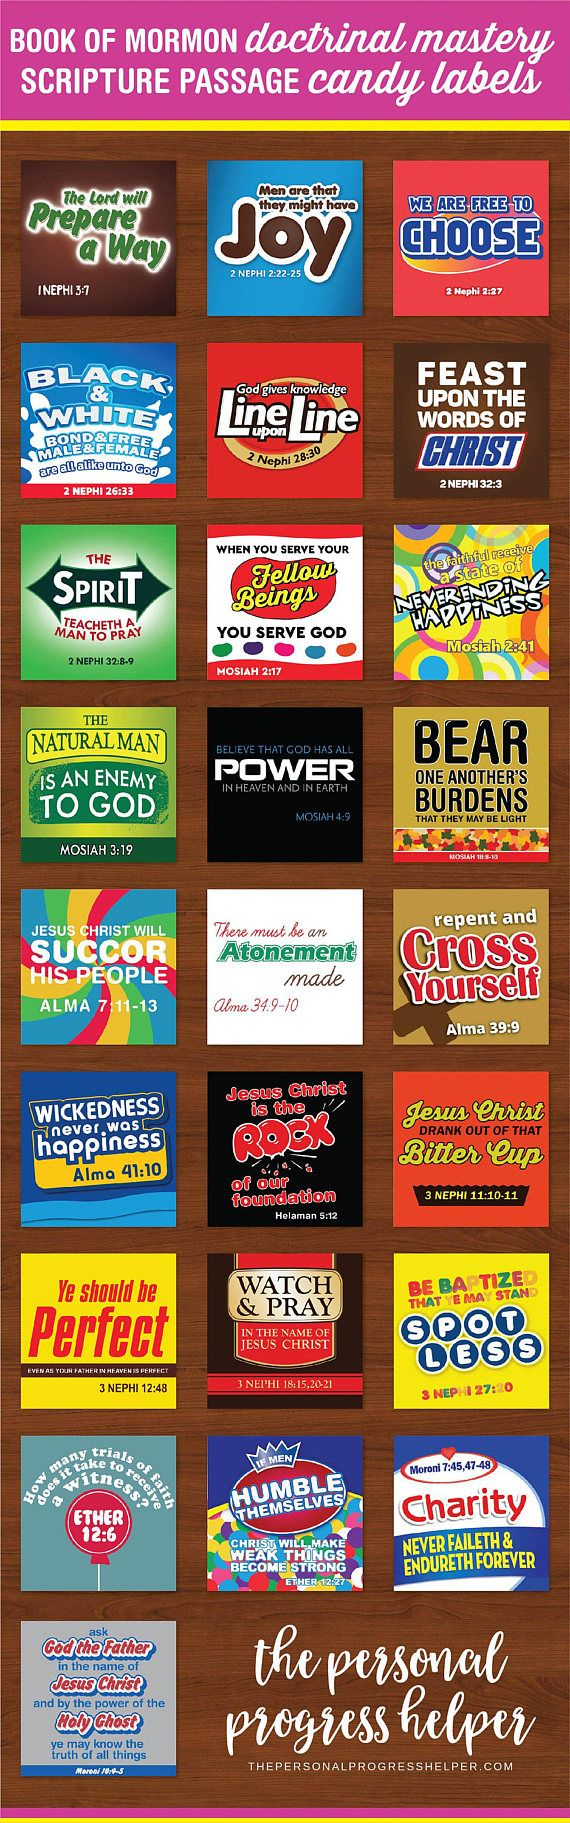 These Book of Mormon Doctrinal Mastery Scripture Candy Labels can get any student excited about Doctrinal Mastery! This download set includes 25 unique labels with a scripture quote that coordinates with a popular candy. These can be used as incentives for memorization, or for any number of games and activities. Each design comes in two varieties, one with the scripture reference and one without. Use these for a Powerpoint or matching game or quiz! The possibilities are endless! This instant…